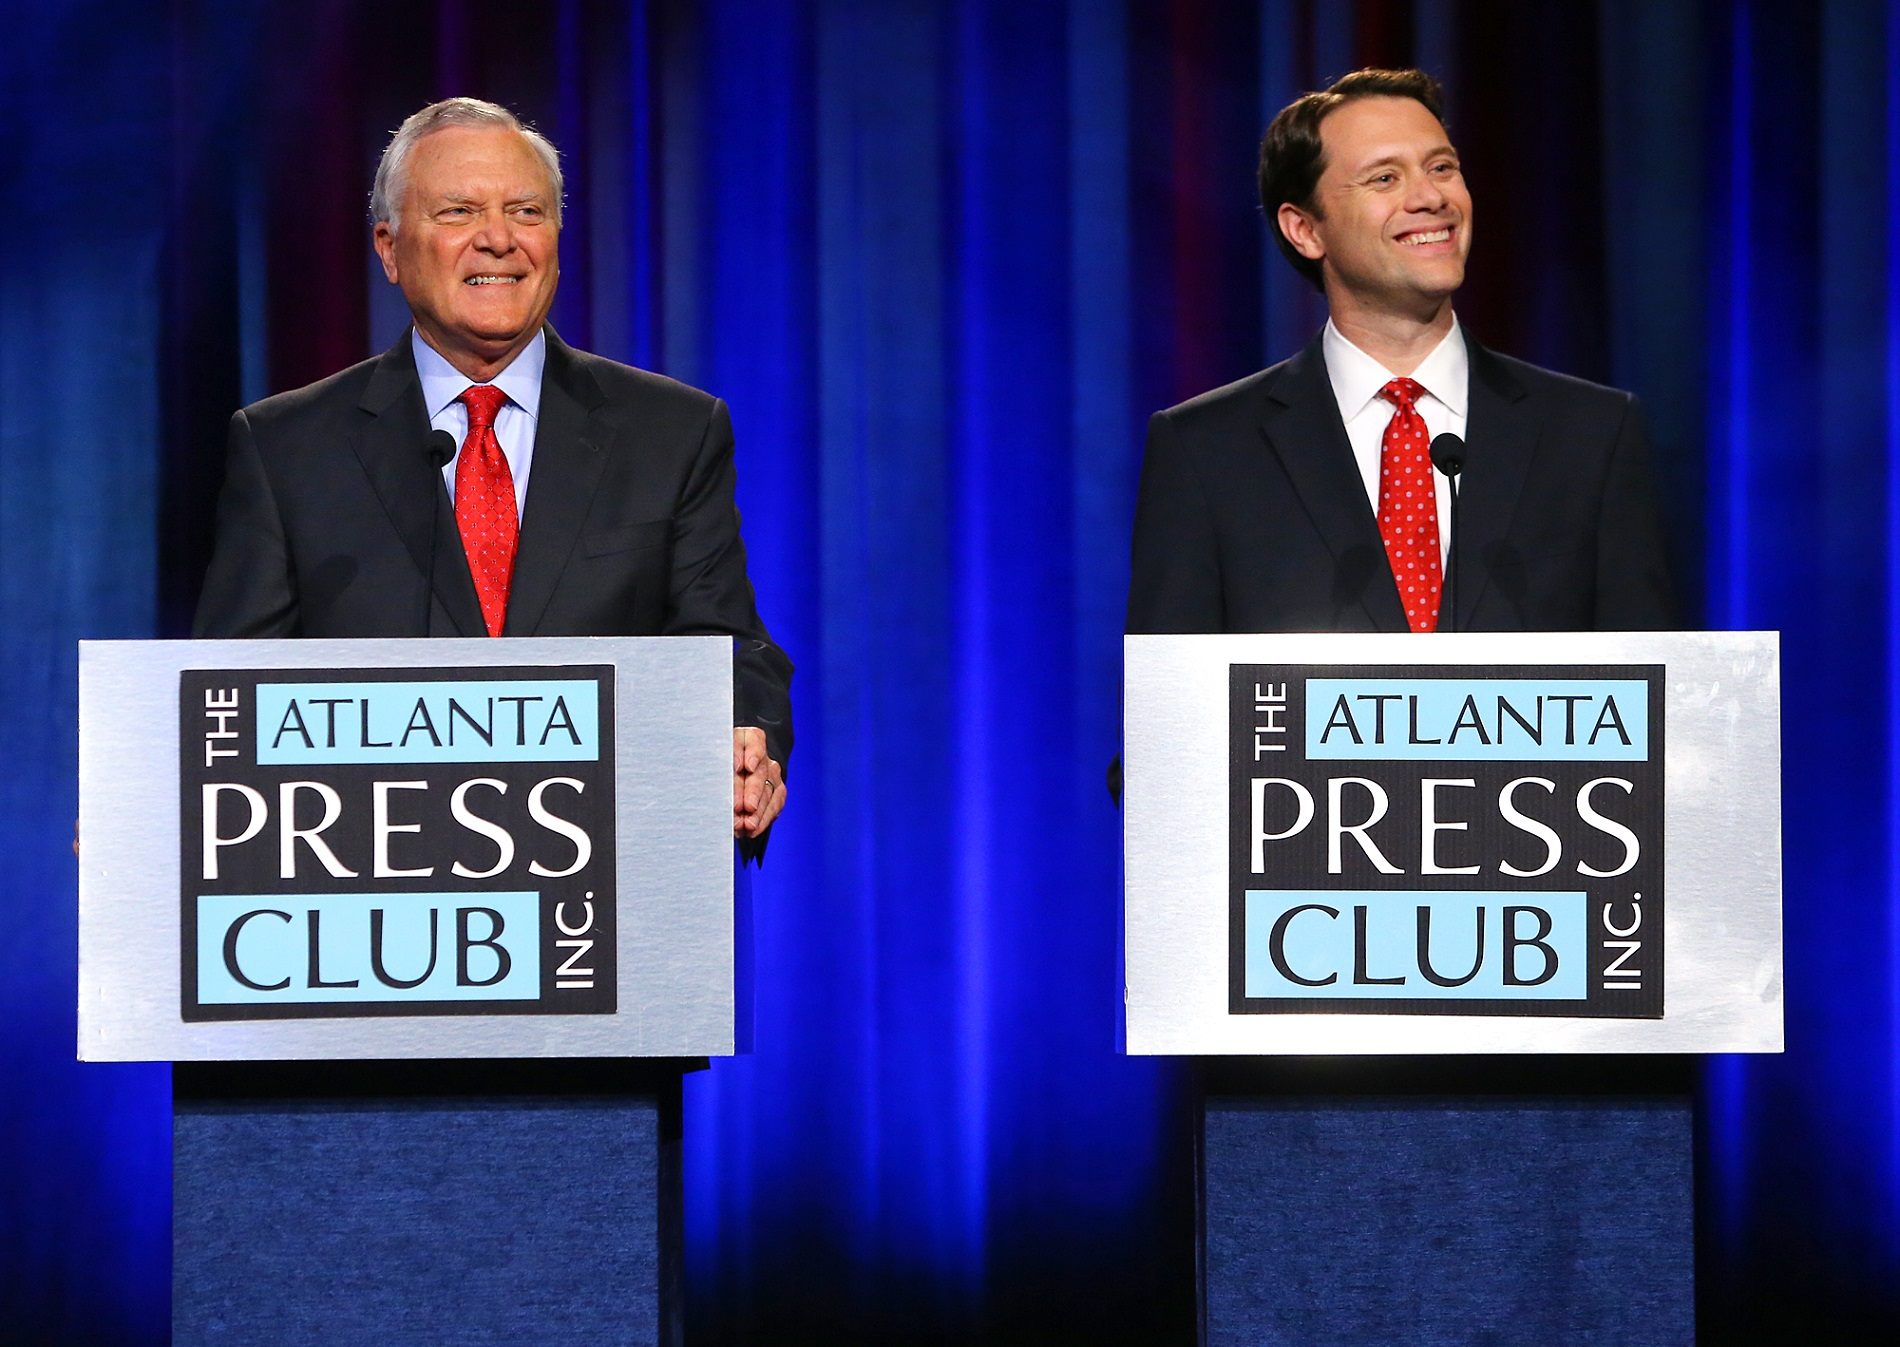 Republican Gov. Nathan Deal, left, and his Democratic rival, state Sen. Jason Carter, smile at a question during the Atlanta Press Club debate on Oct. 19. CURTIS COMPTON PHOTOS / AJC